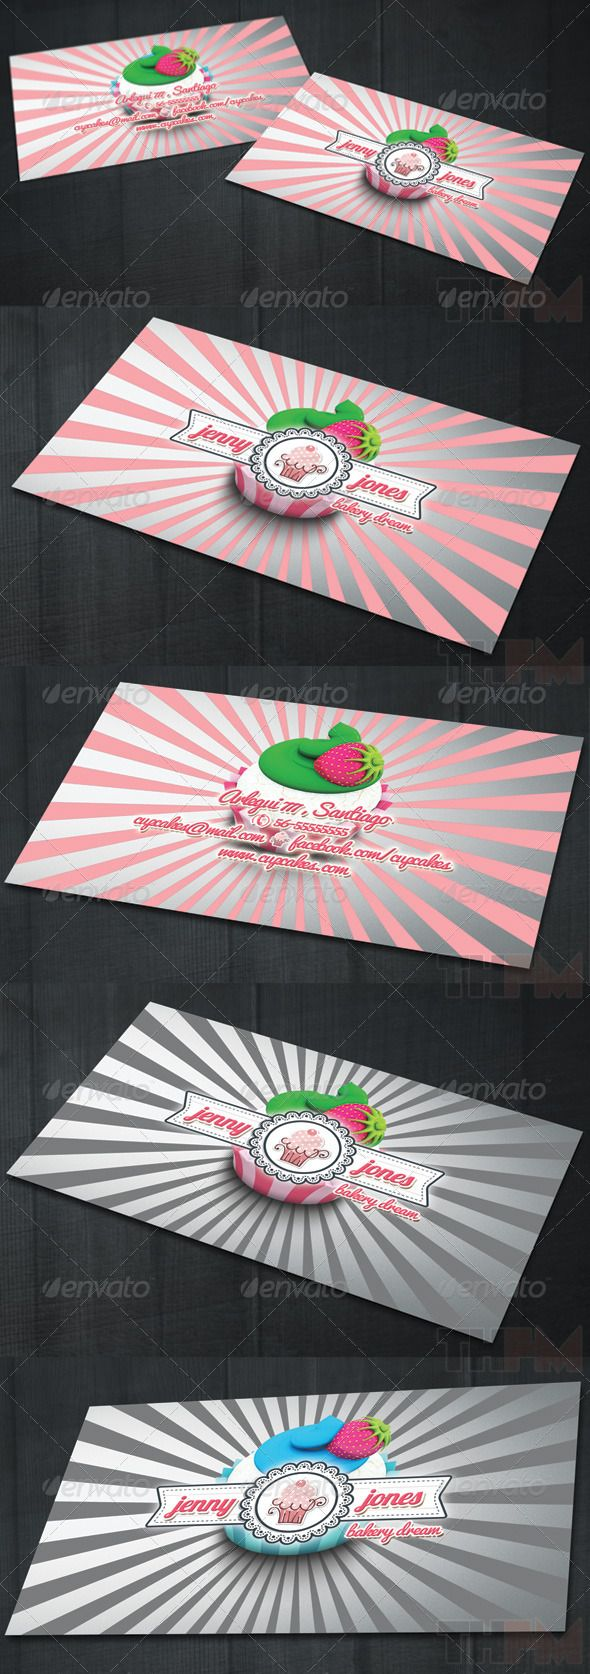 """Bakery and Cupcakes Business Card  #GraphicRiver         2 sided business or visit card template. Ideal for bakery or cupcakes makers. Great for personal and business usage.   Bleeded Fully Editable Layered PSD 300 dpi 3.5"""" x 2"""" / Bleed Size: 3.75"""" x 2.25"""" Print Ready – CMYK   Fonts used can be downloaded free from:  Lobster  .fontsquirrel /fonts/Lobster Pacifico  .fontsquirrel /fonts/pacifico     Created: 4November13 GraphicsFilesIncluded: PhotoshopPSD #TransparentPNG Layered: Yes…"""